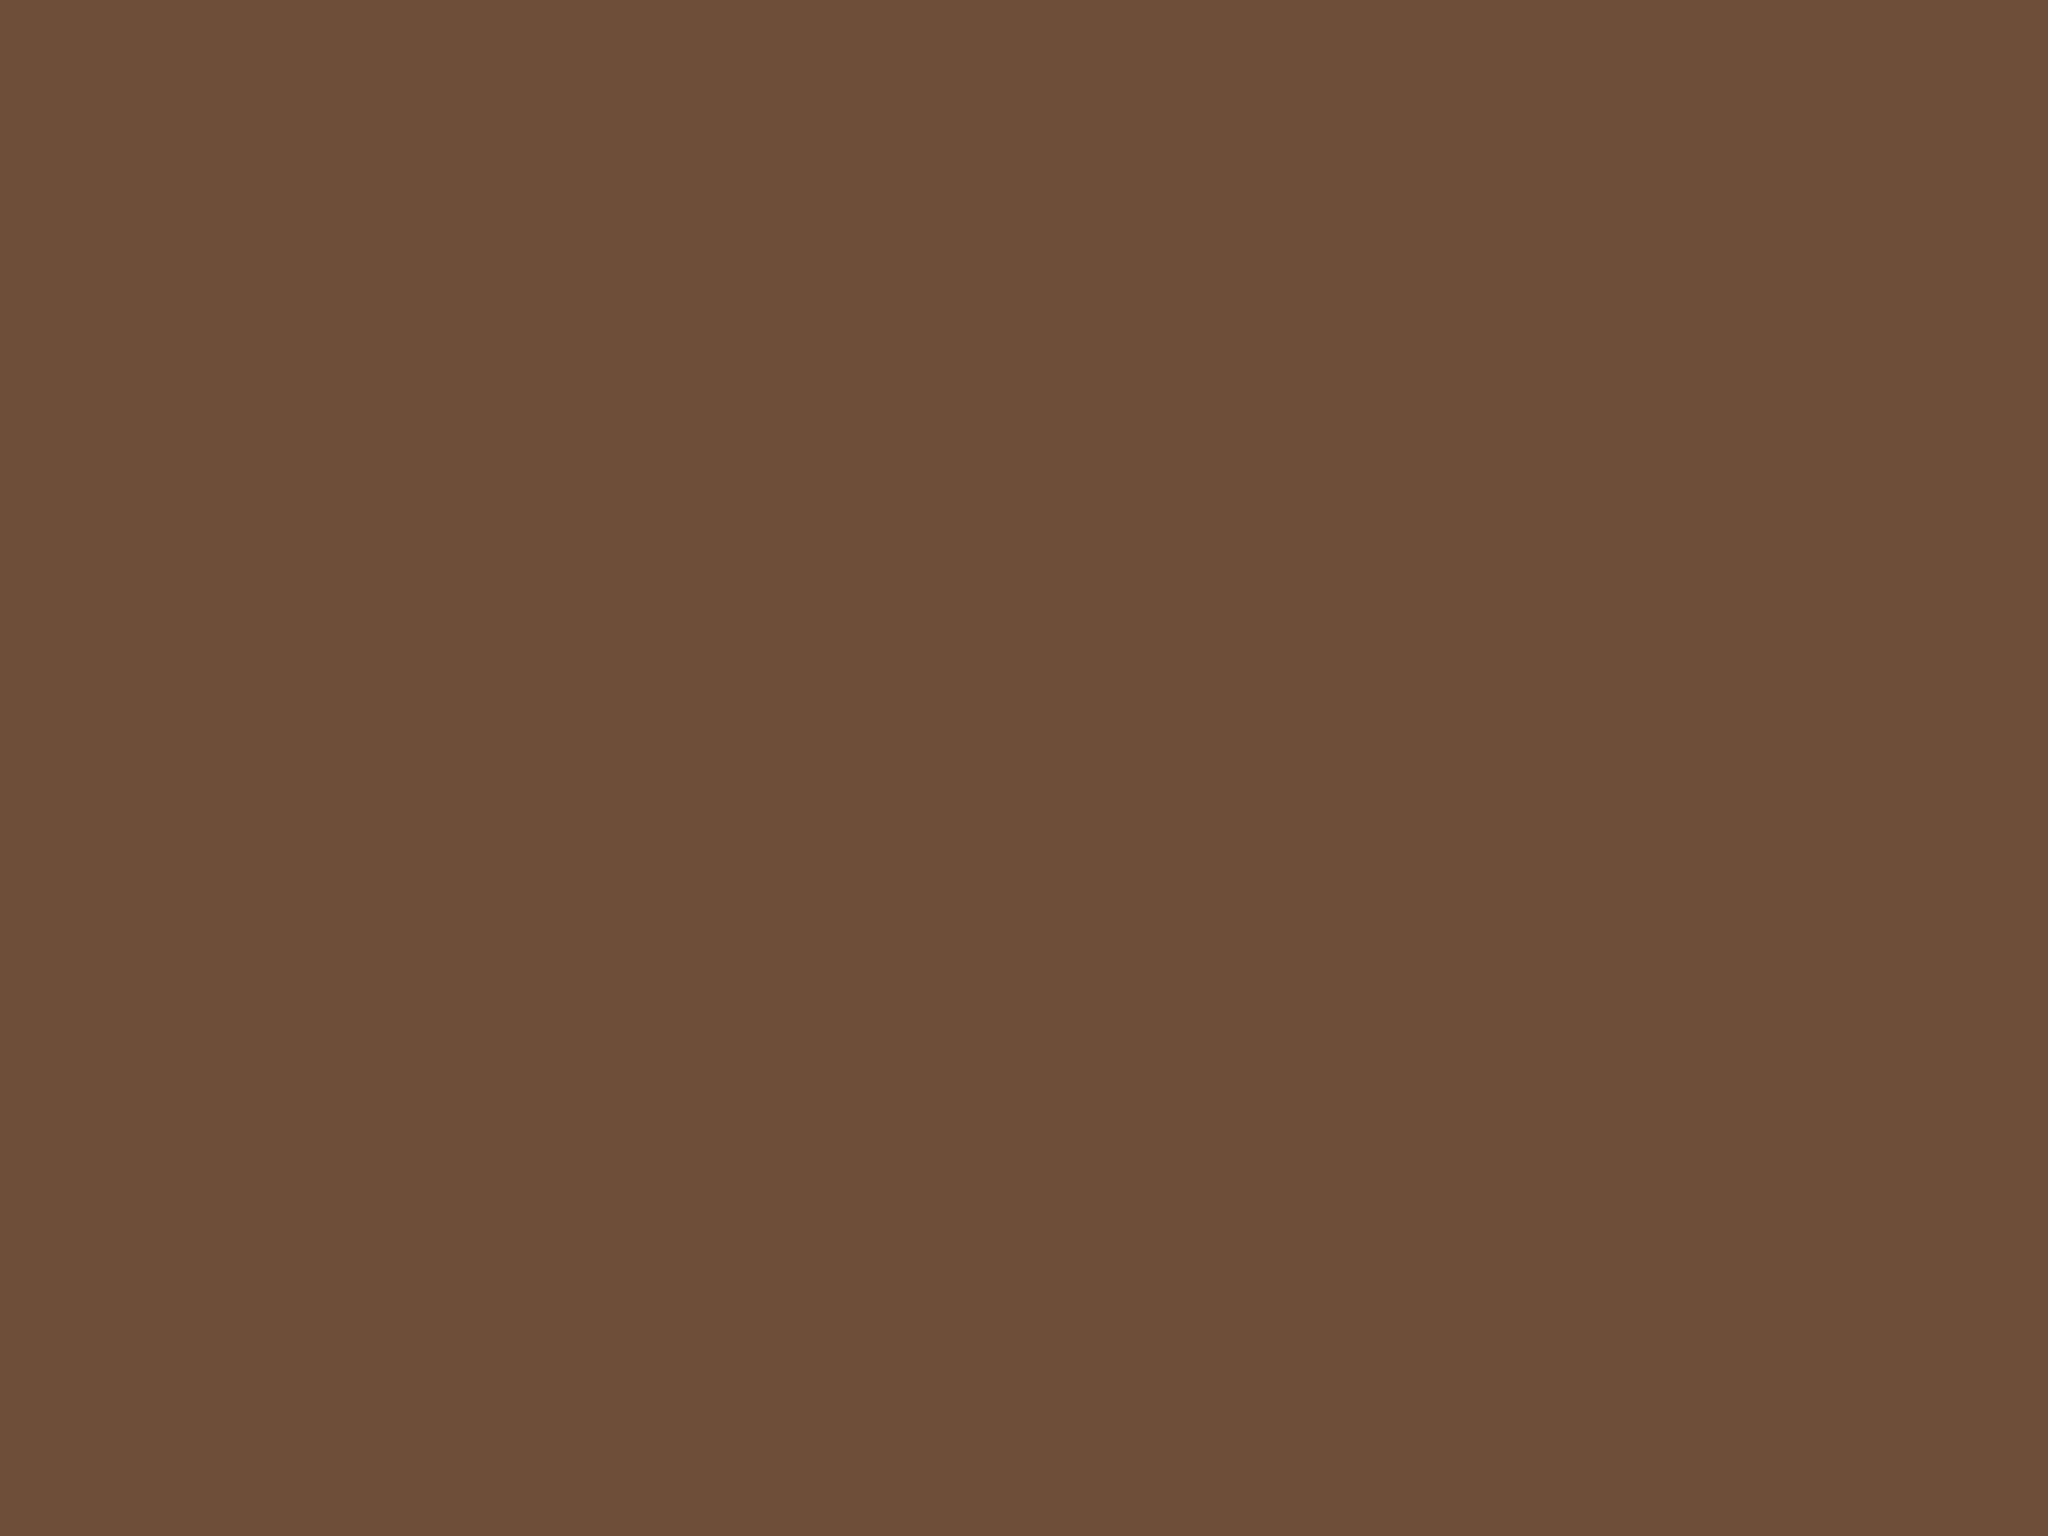 2048x1536 Coffee Solid Color Background